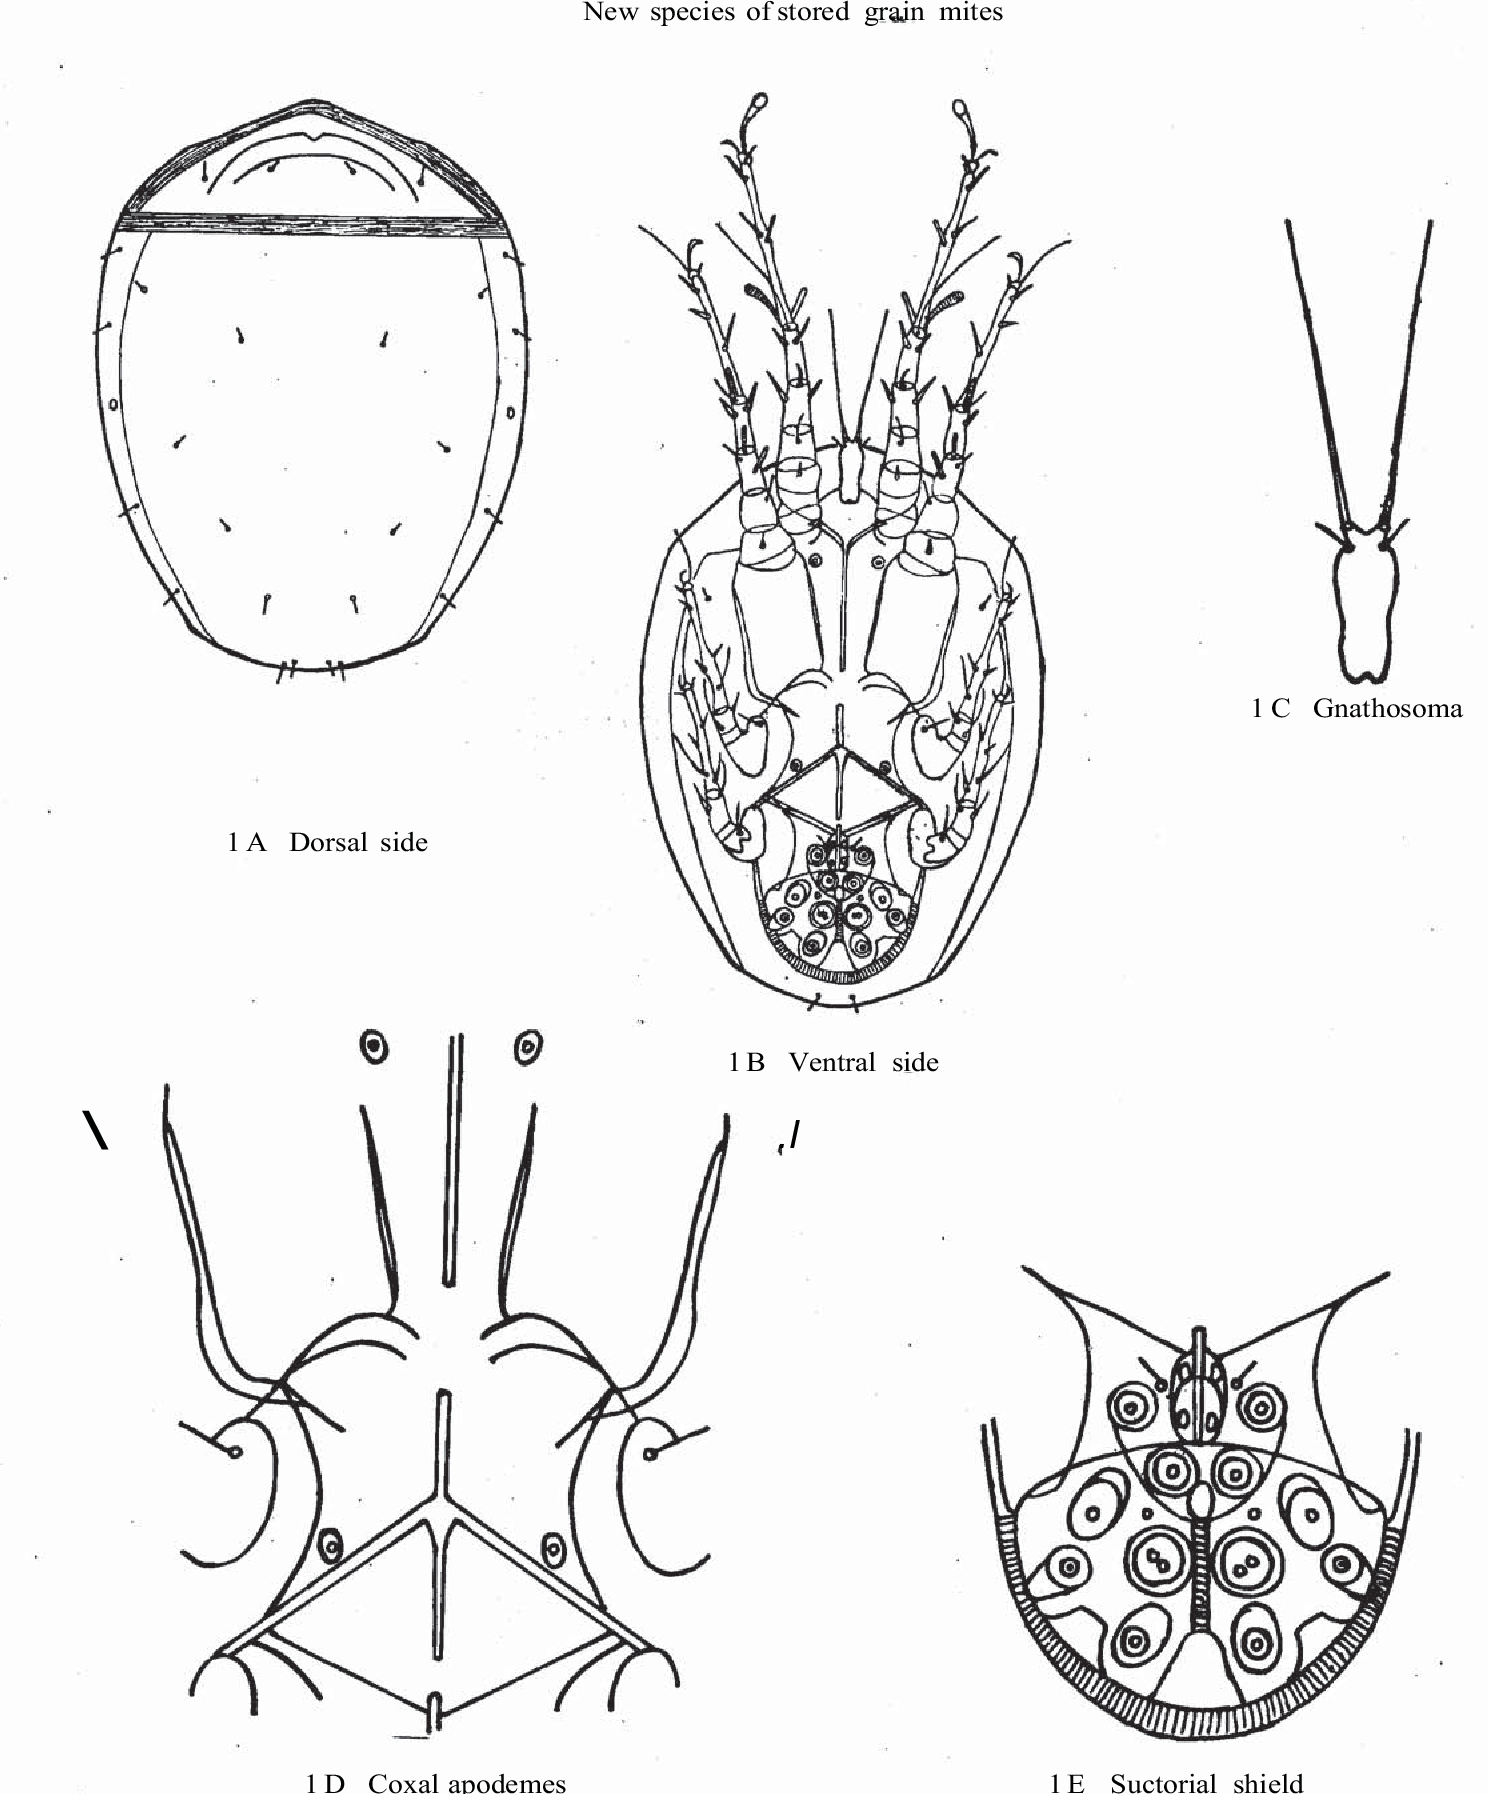 Figure 1 from TWO NEW MITE SPECIES (HYPOPI) OF THE GENUS